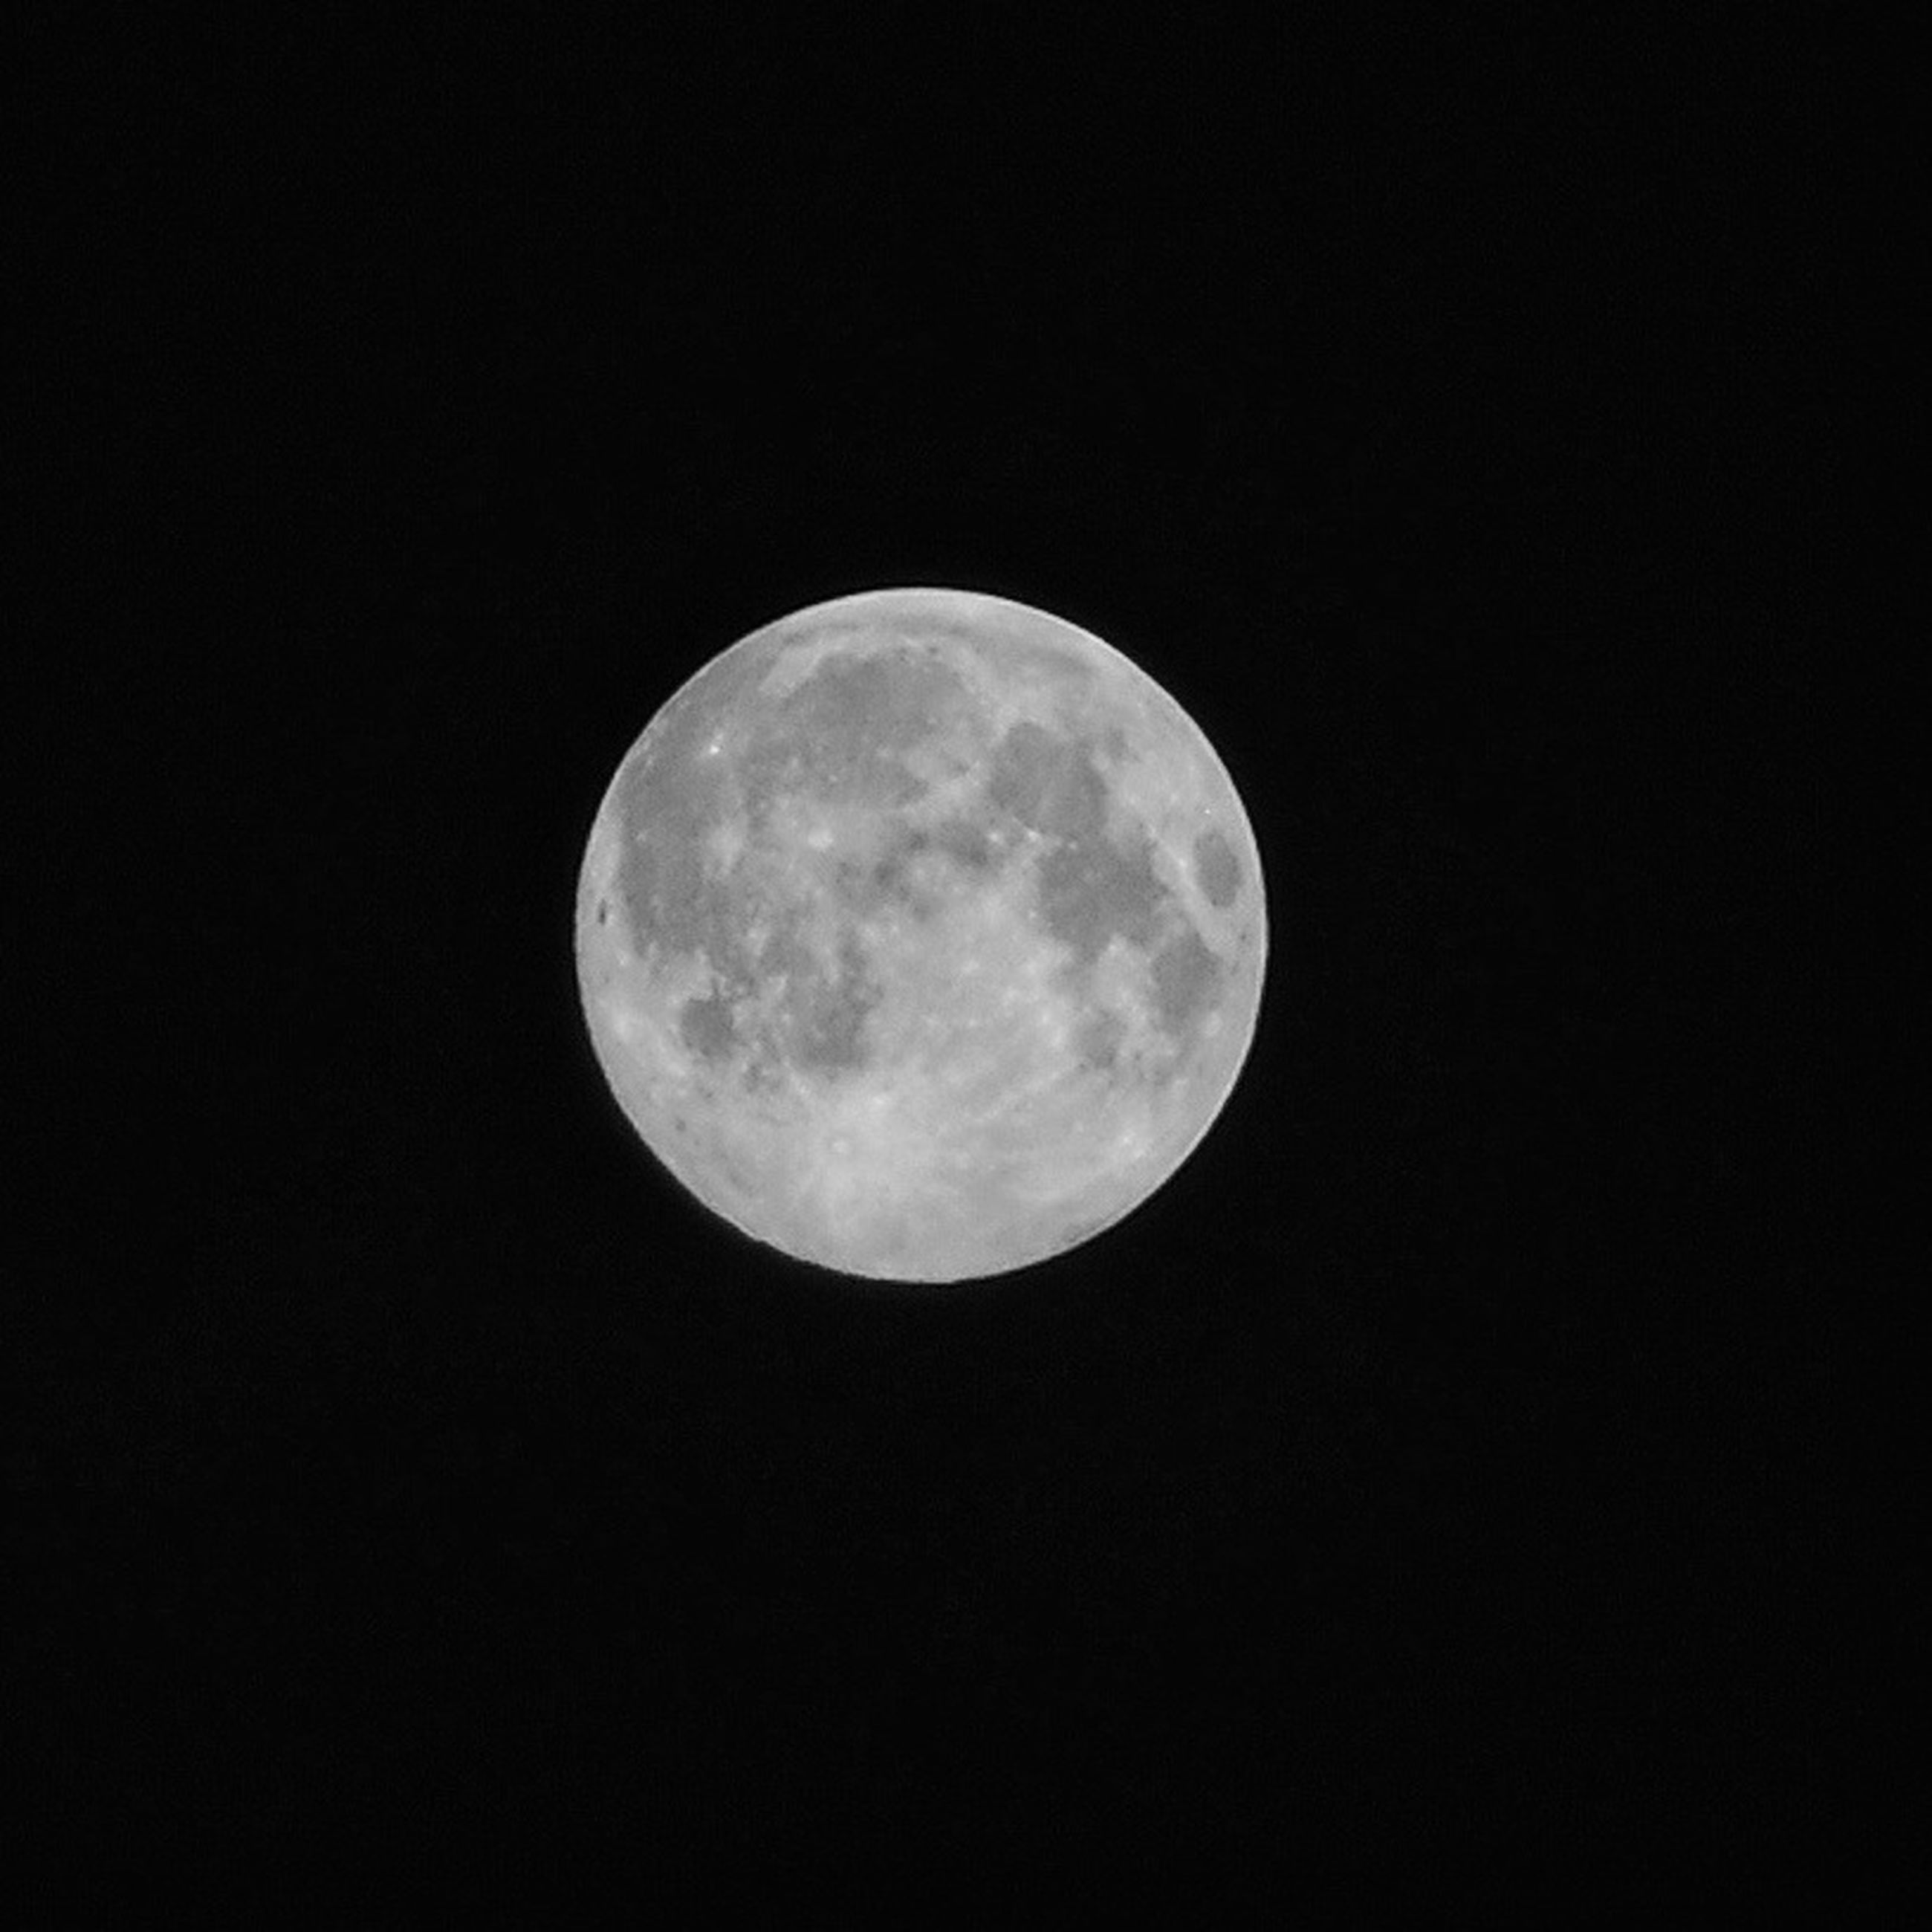 moon, astronomy, full moon, planetary moon, night, moon surface, circle, beauty in nature, low angle view, discovery, sphere, tranquility, space exploration, tranquil scene, scenics, nature, copy space, sky, majestic, dark